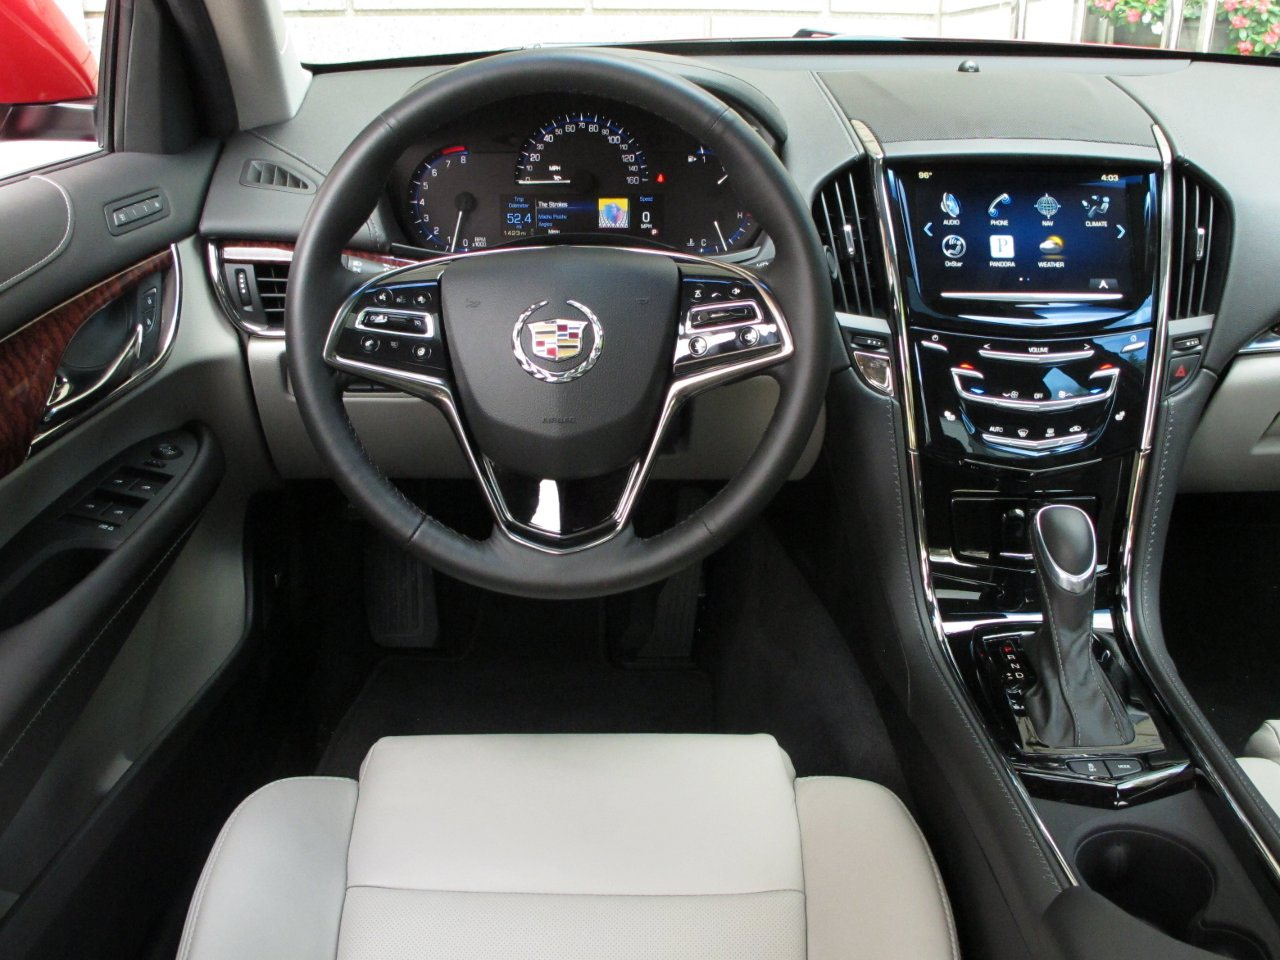 Ats Cadillac 2013 Picture